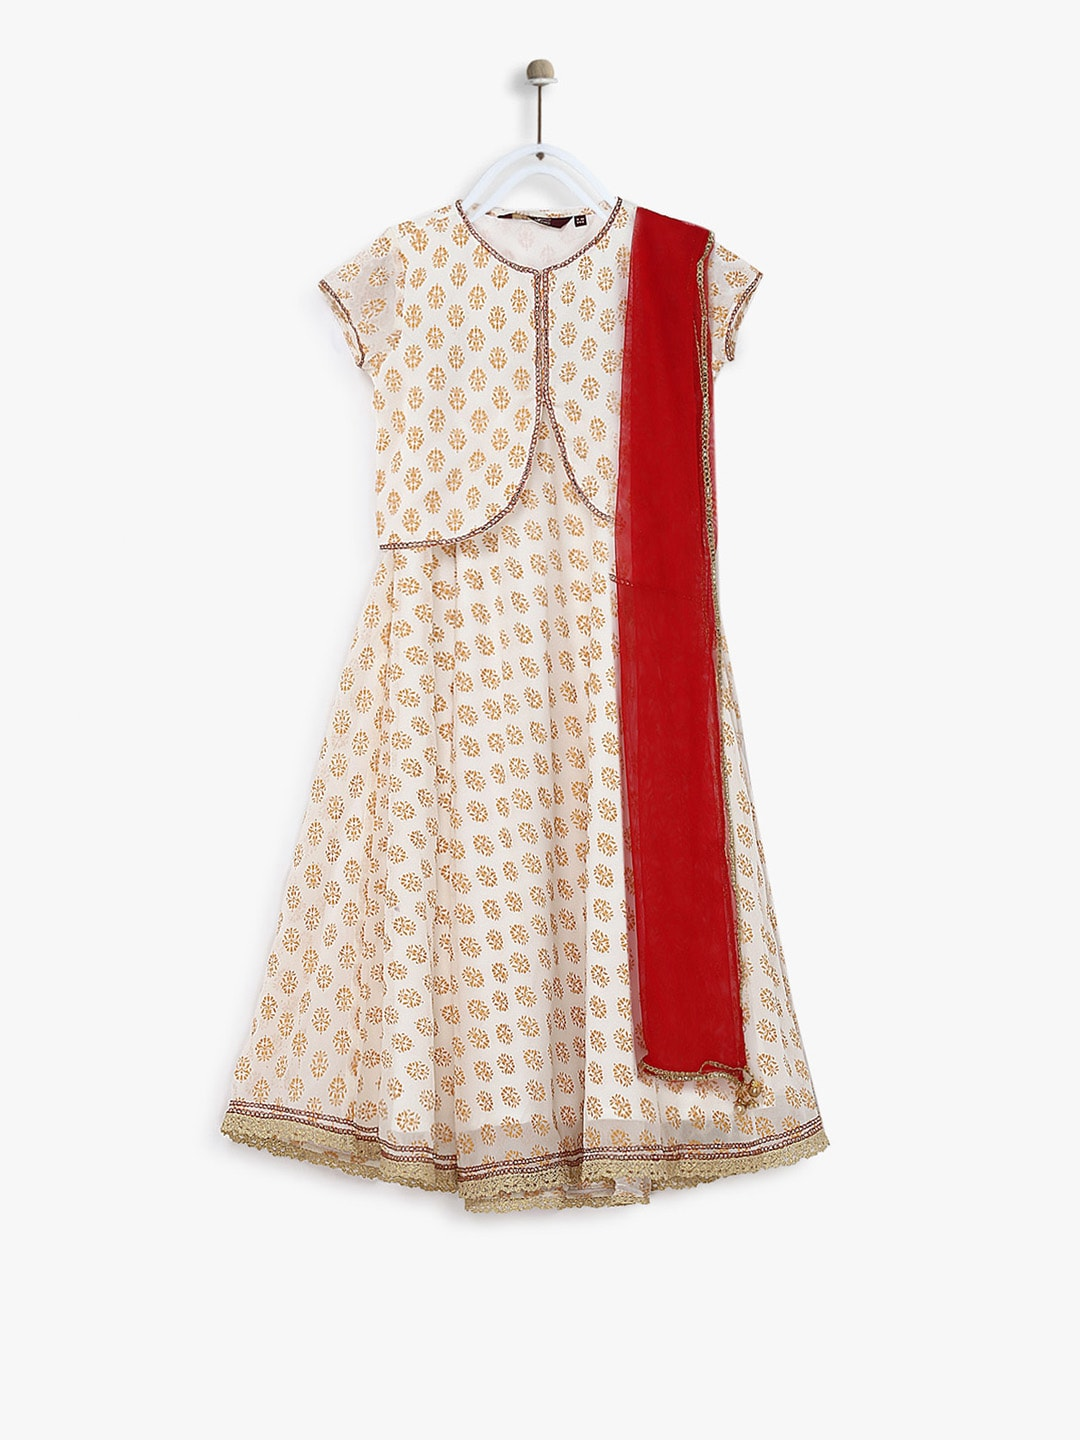 b04a2798058 Kids Dresses - Buy Kids Clothing Online in India